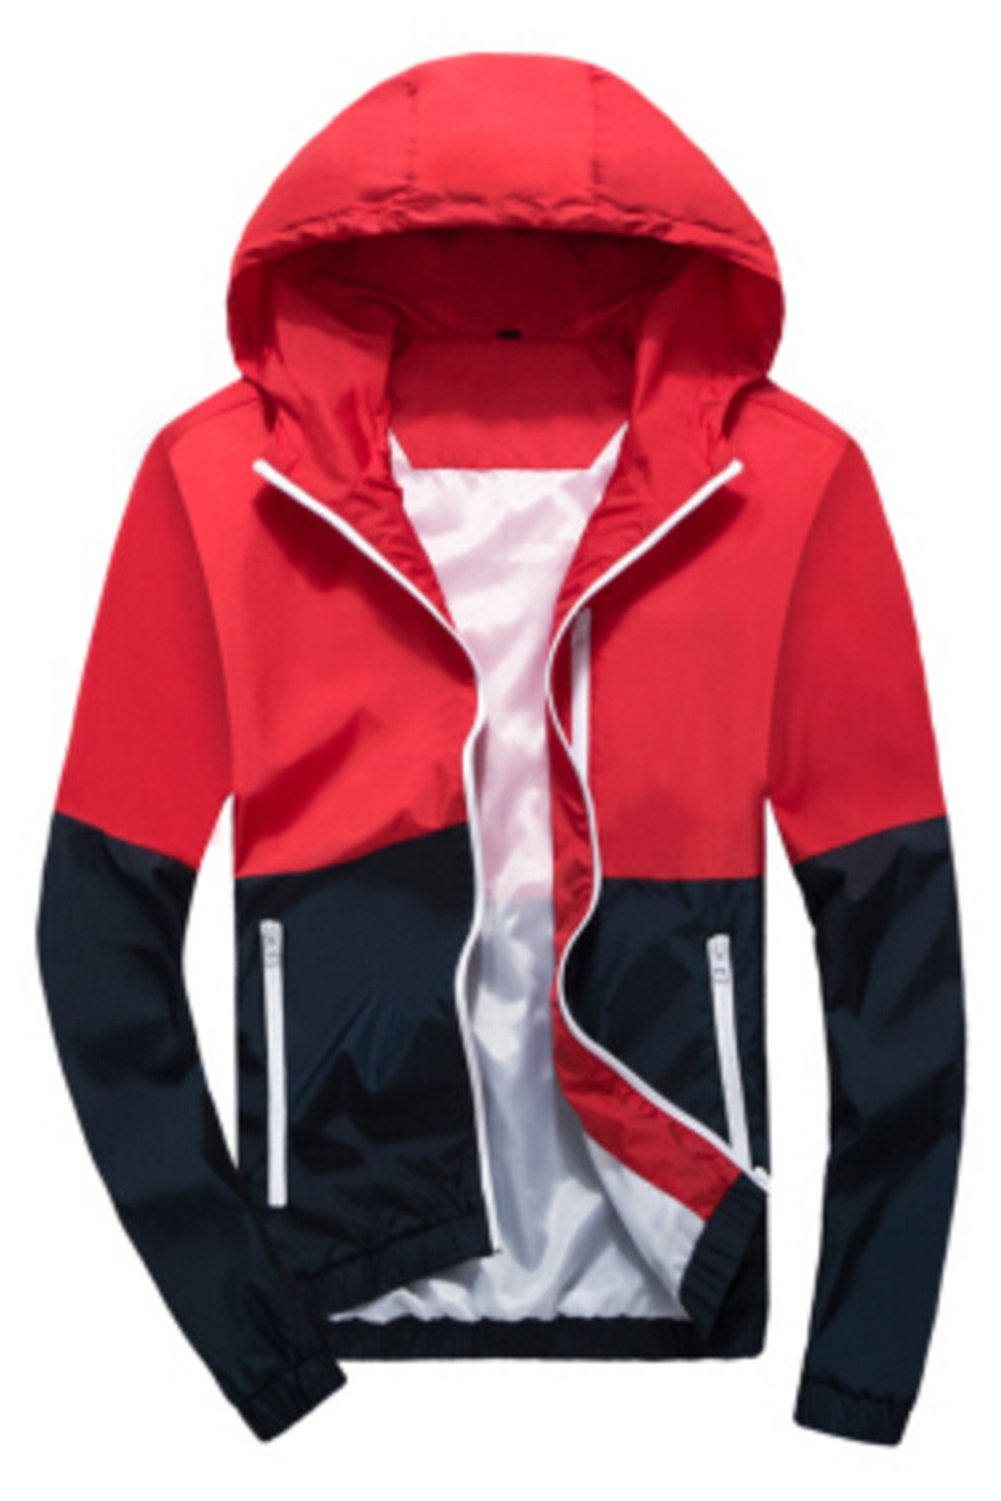 Happyyip Womens Light Weight Outdoor Hooded Windbreaker Sports Outwear Jacket (US S/Asian Tag M, Red)